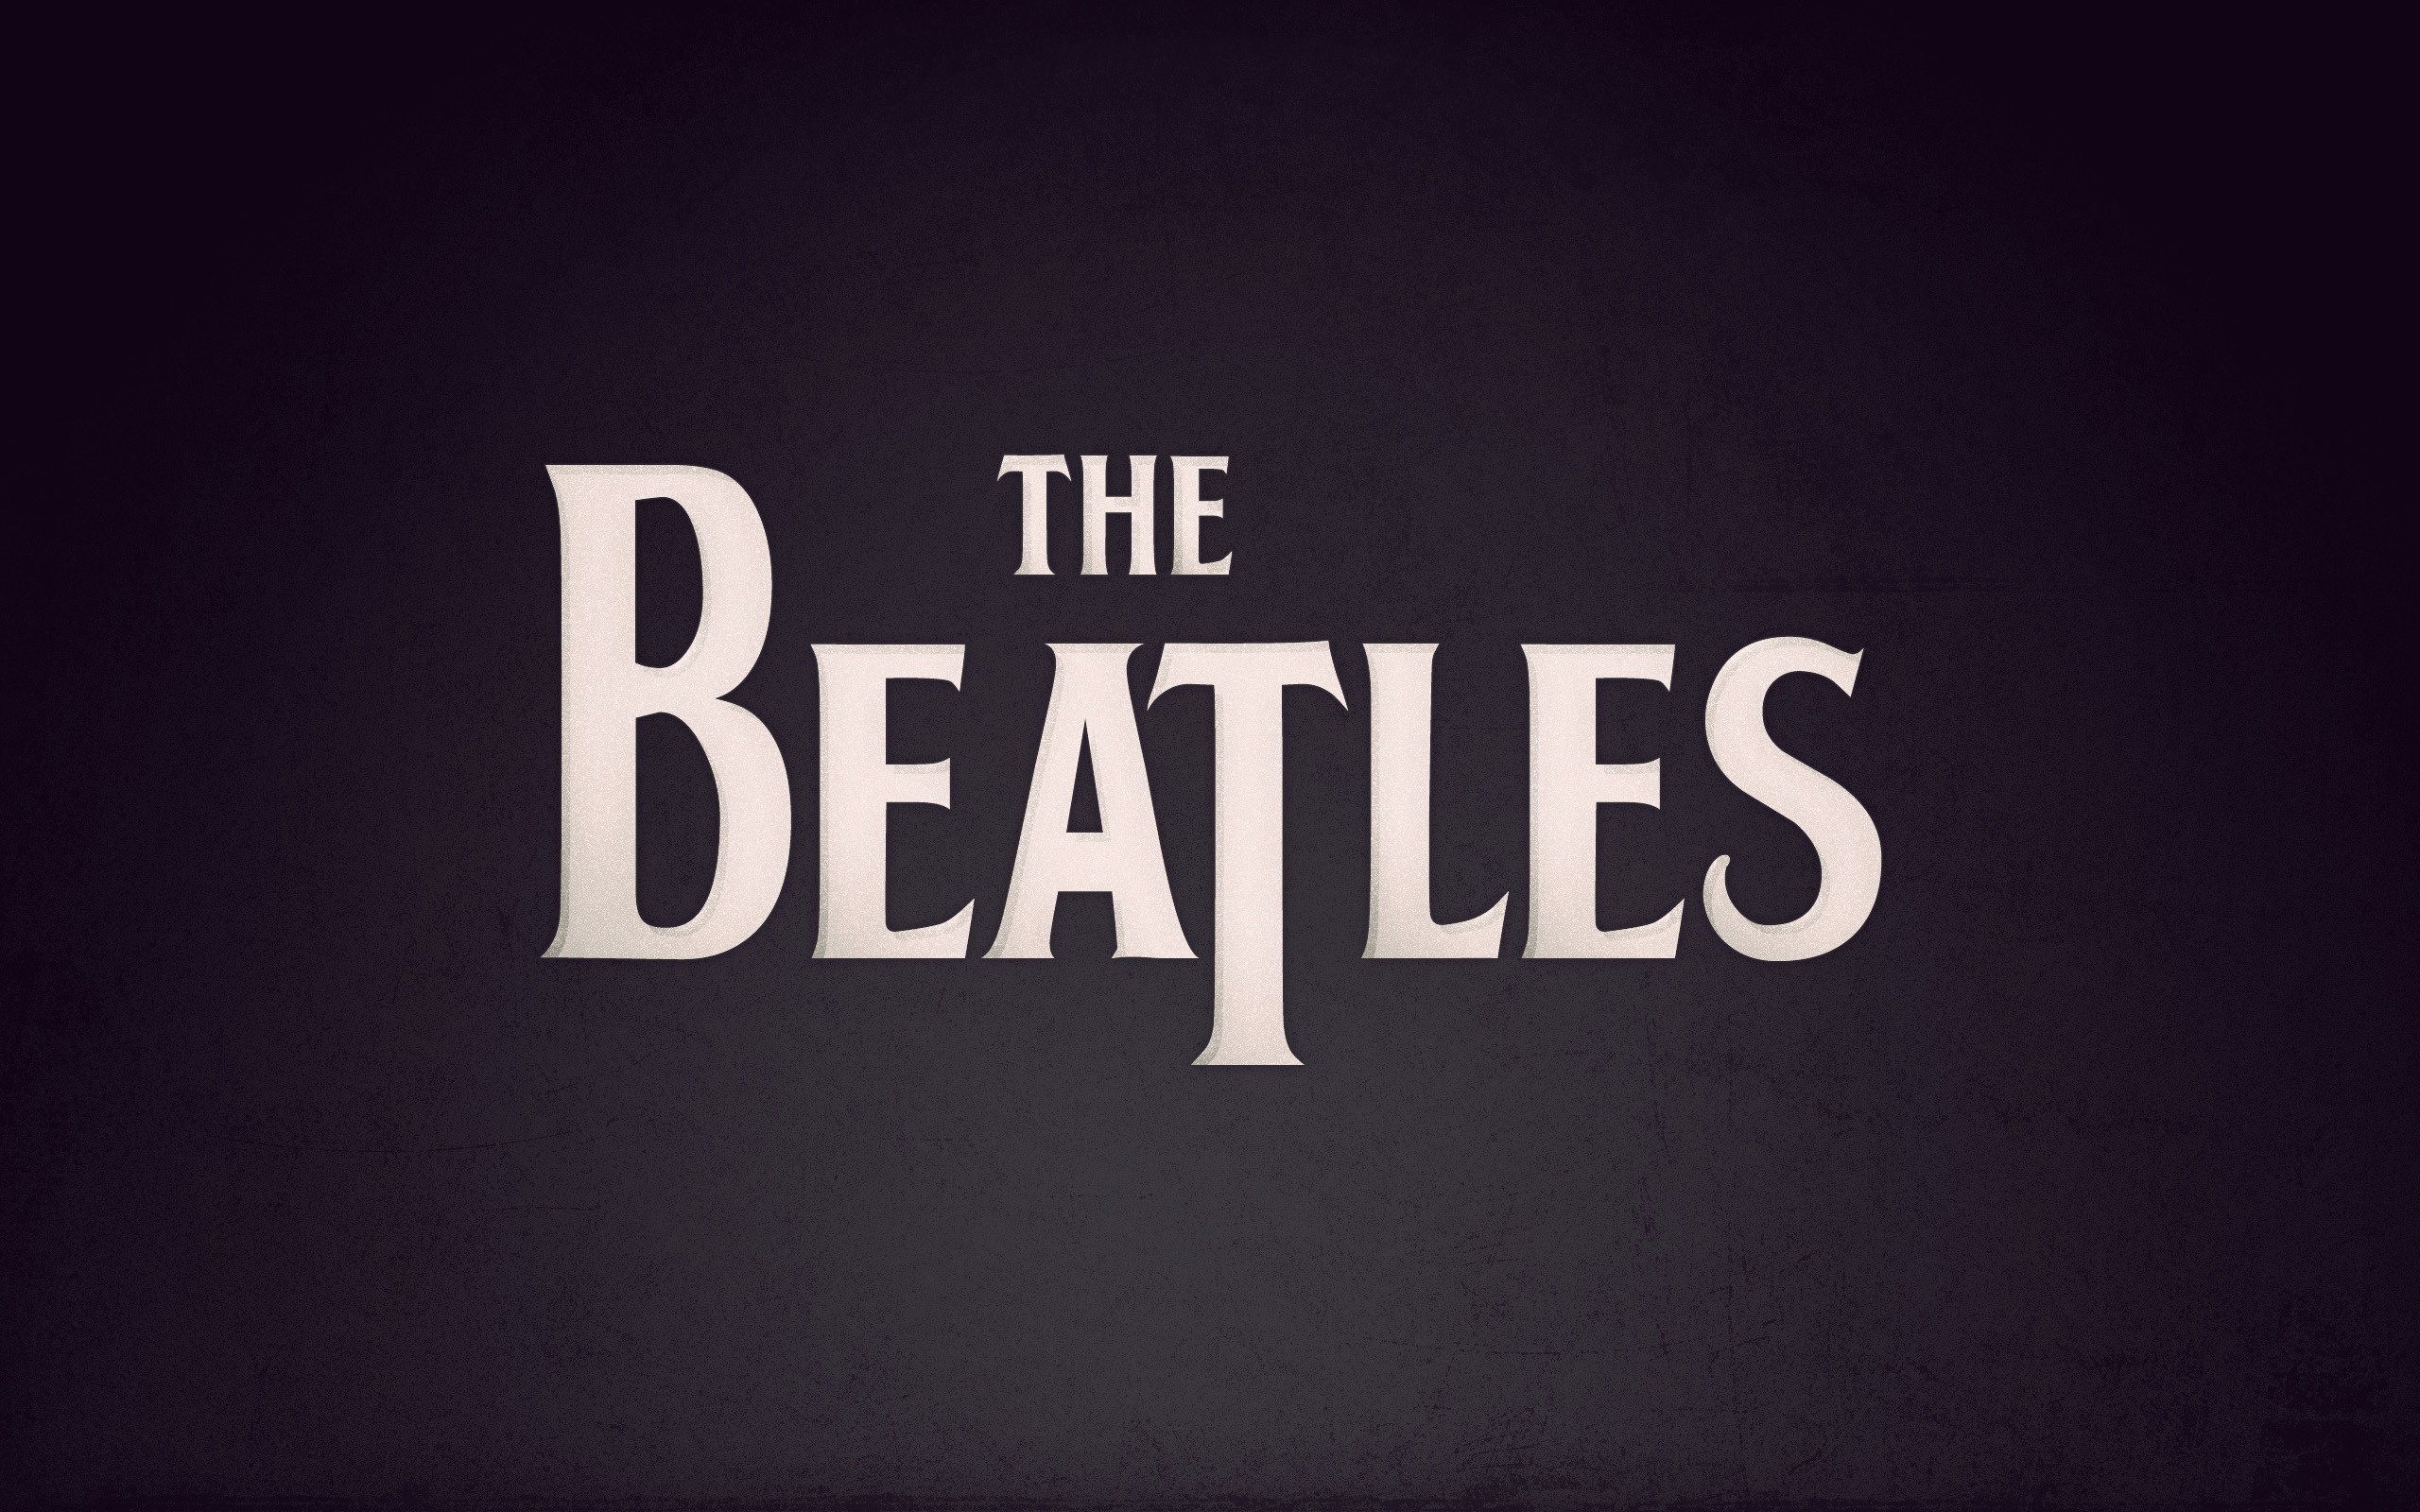 The Beatles wallpapers | The Beatles stock photos